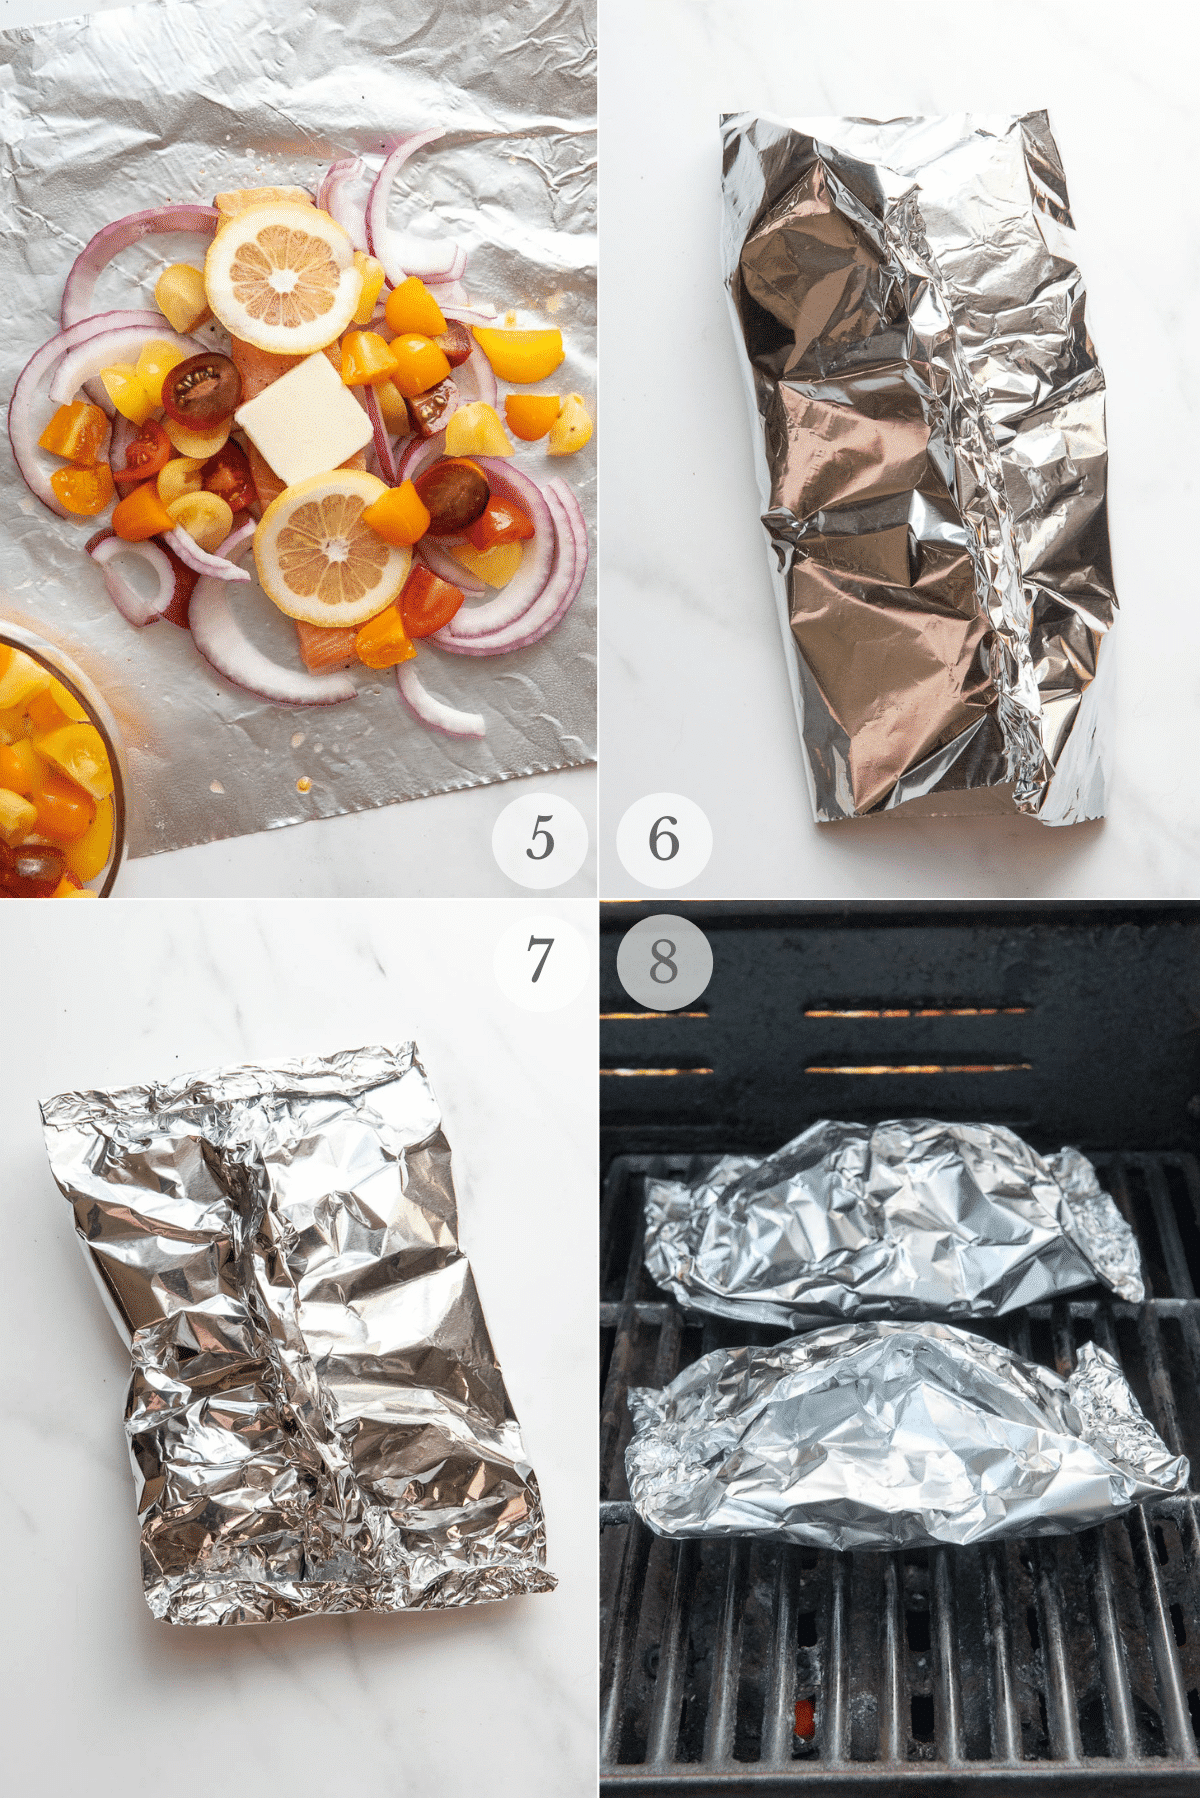 grilled salmon in foil recipe steps 5-8